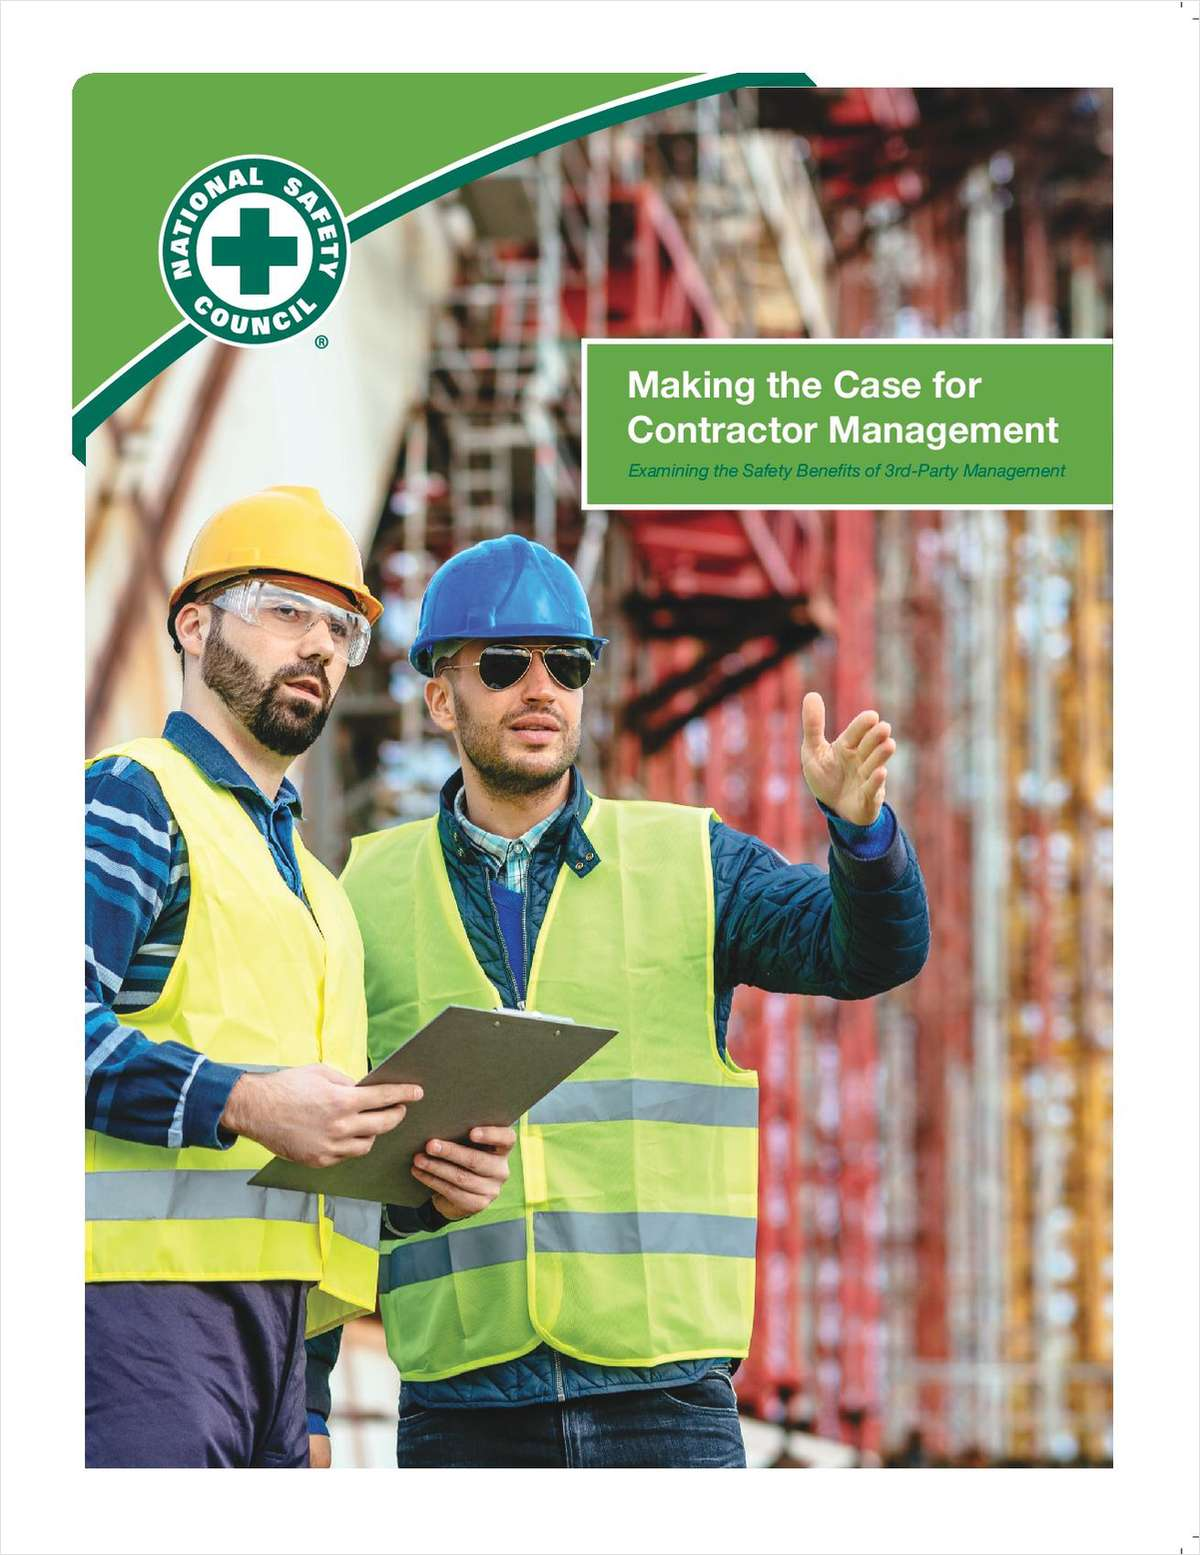 NSC Study: MAKING THE CASE FOR CONTRACTOR MANAGEMENT (Full Report)